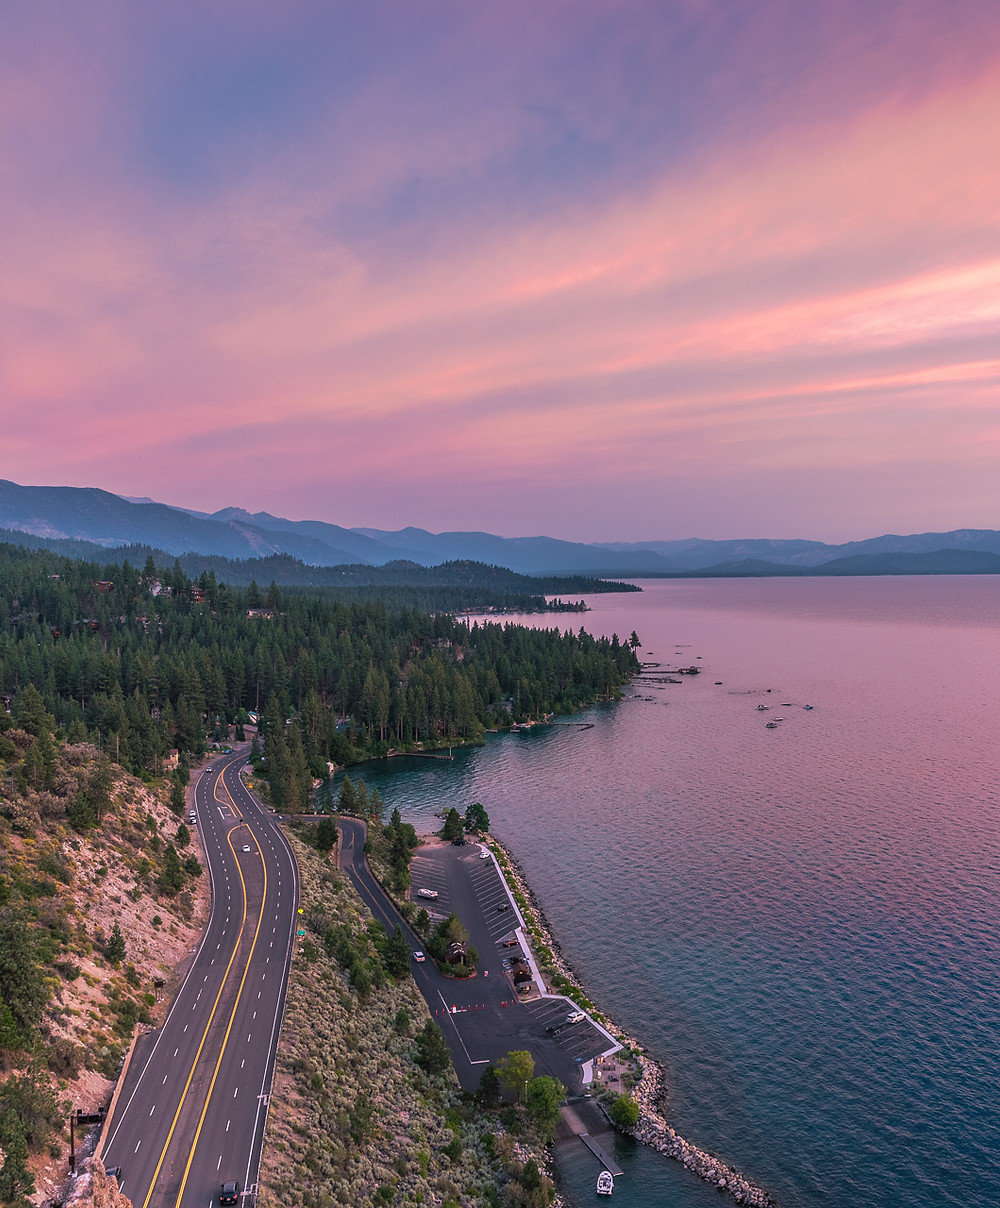 Sunset at Cave Rock in Lake Tahoe